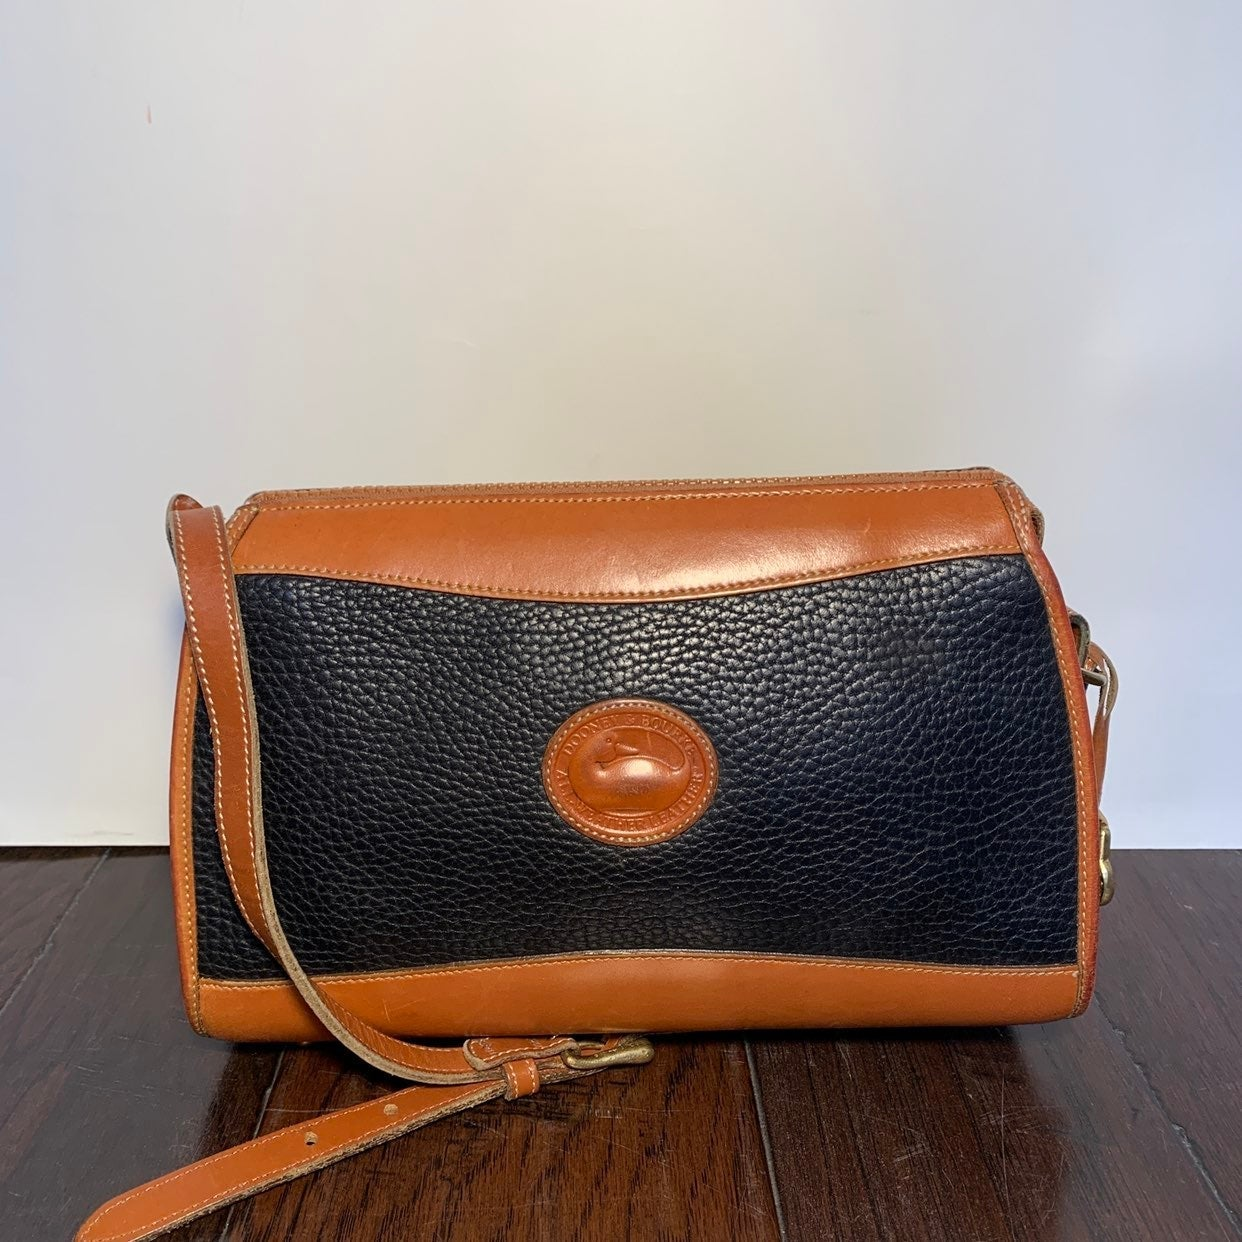 Vintage Dooney & Bourke Classic Bag